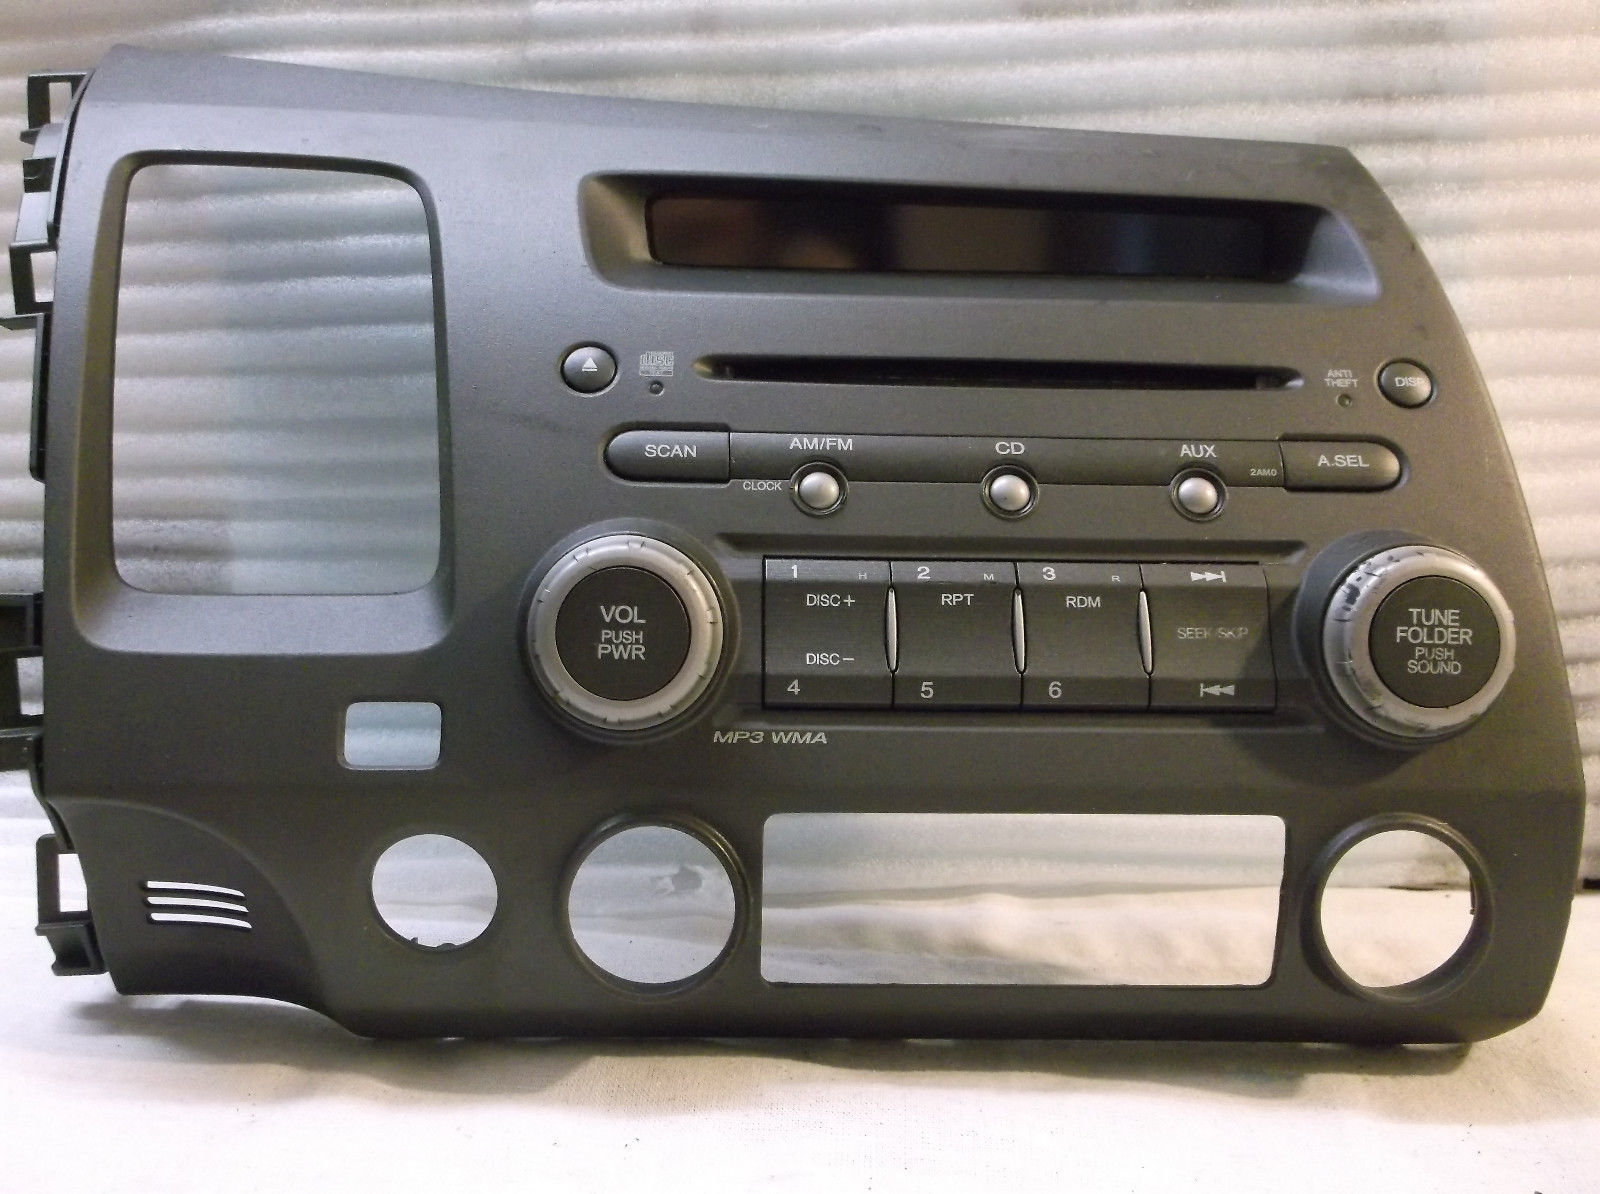 06 07 08 09 10 11 honda civic am fm radio cd player mp3. Black Bedroom Furniture Sets. Home Design Ideas